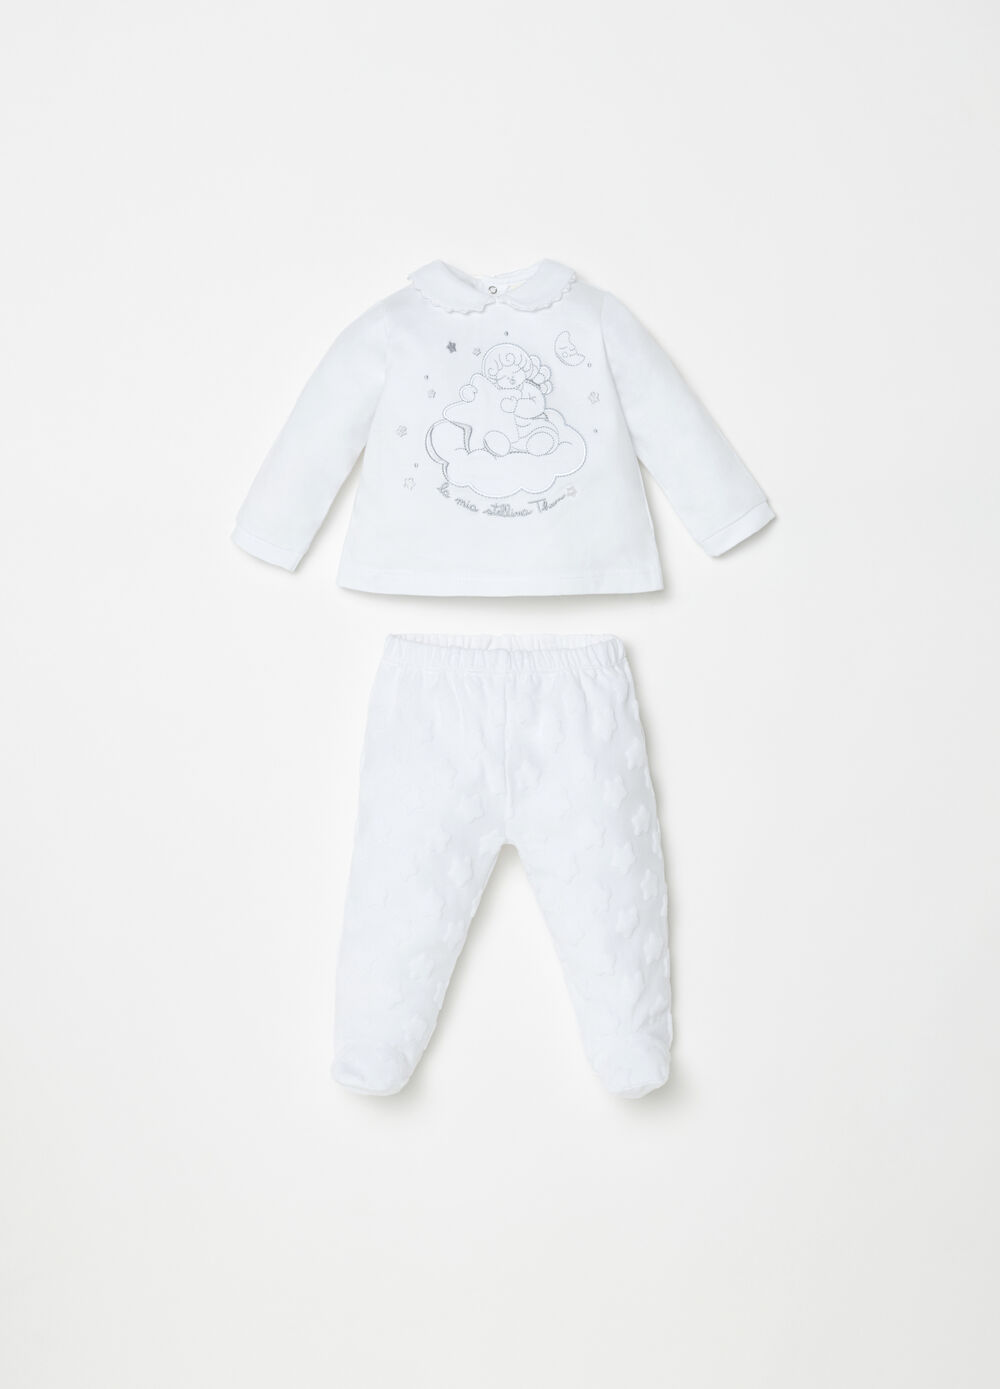 THUN baby tracksuit with sweatshirt and trousers